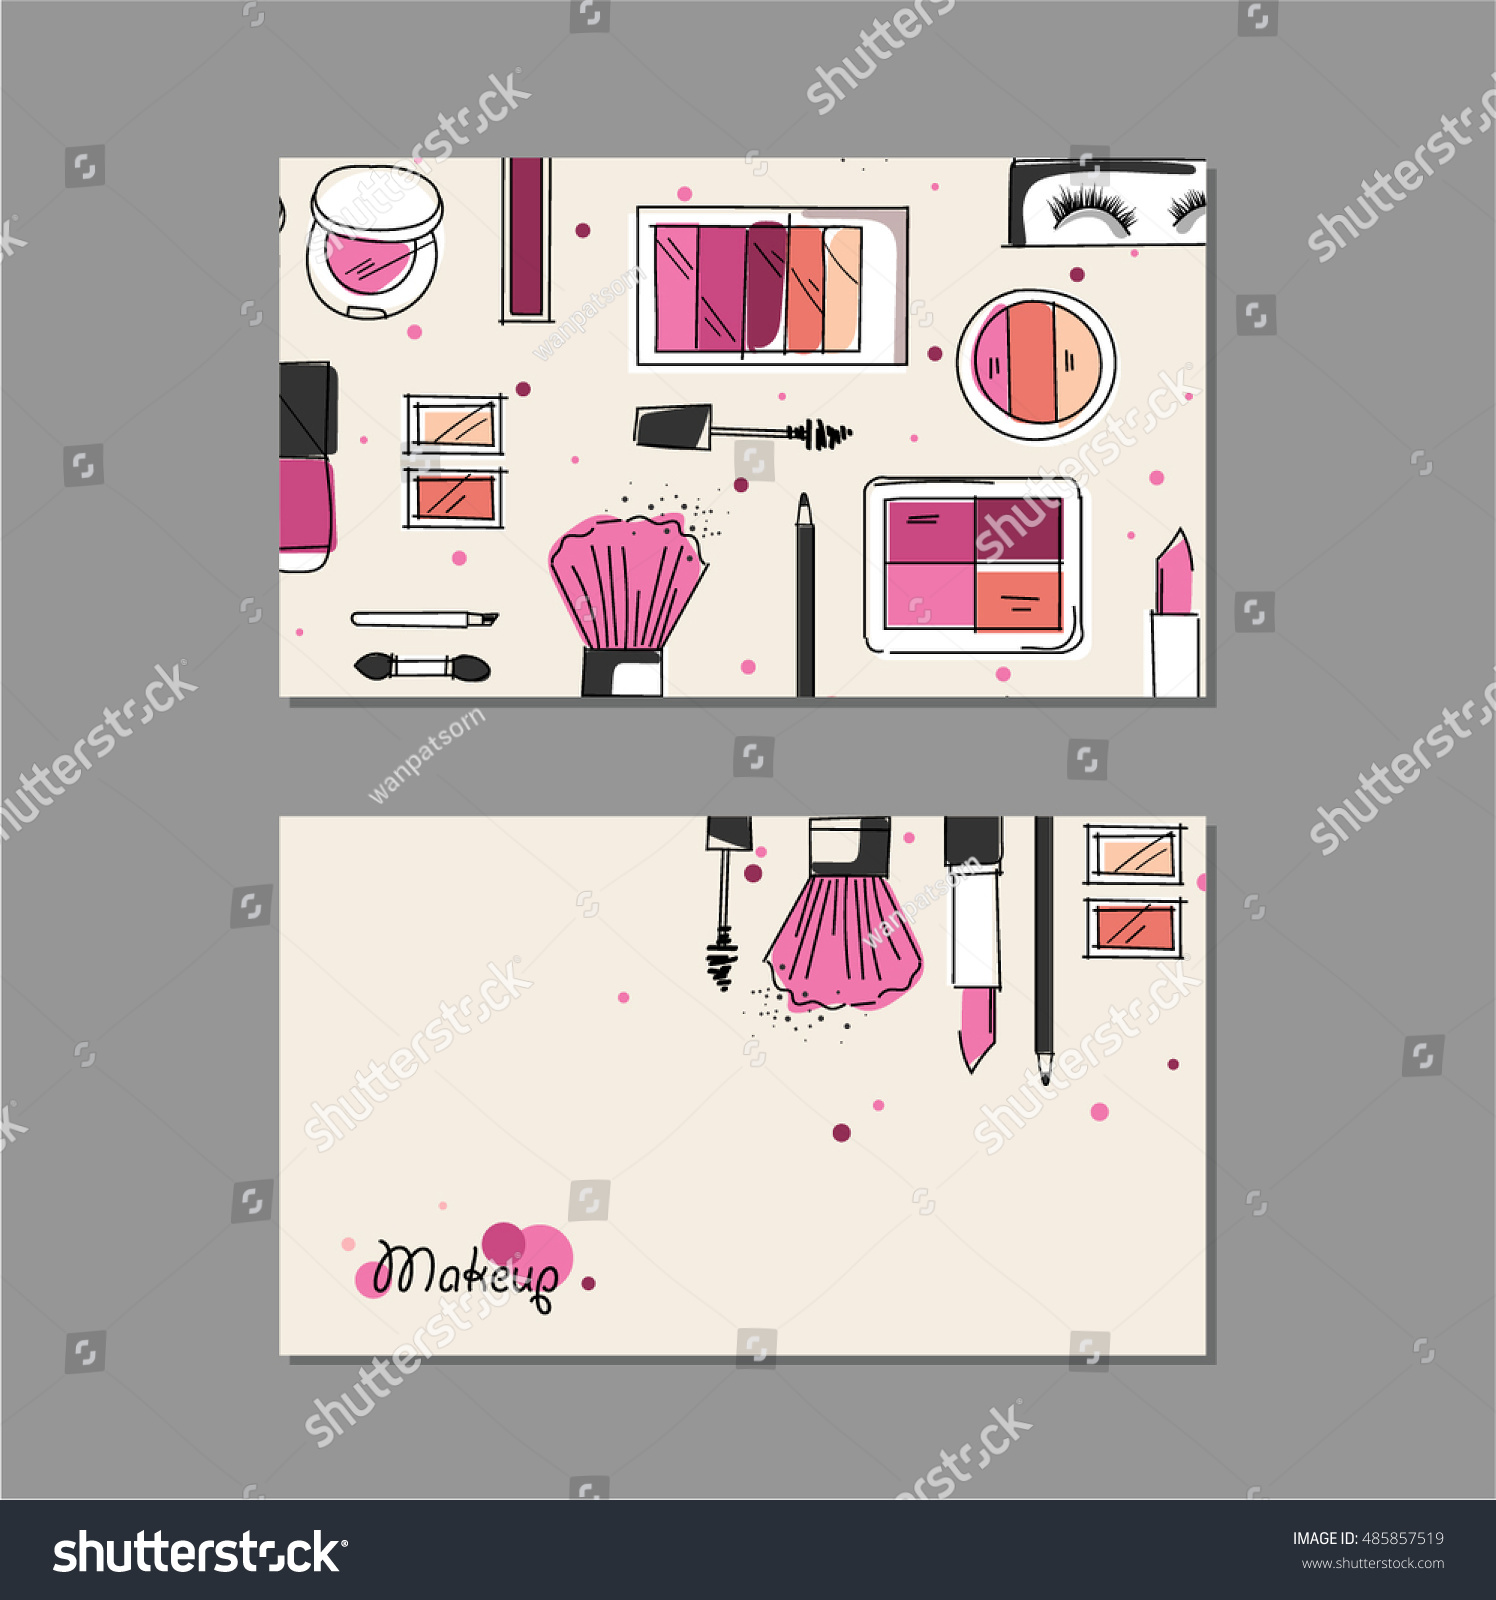 Makeup Artist Business Card Vector Template Stock Vector 485857519 ...